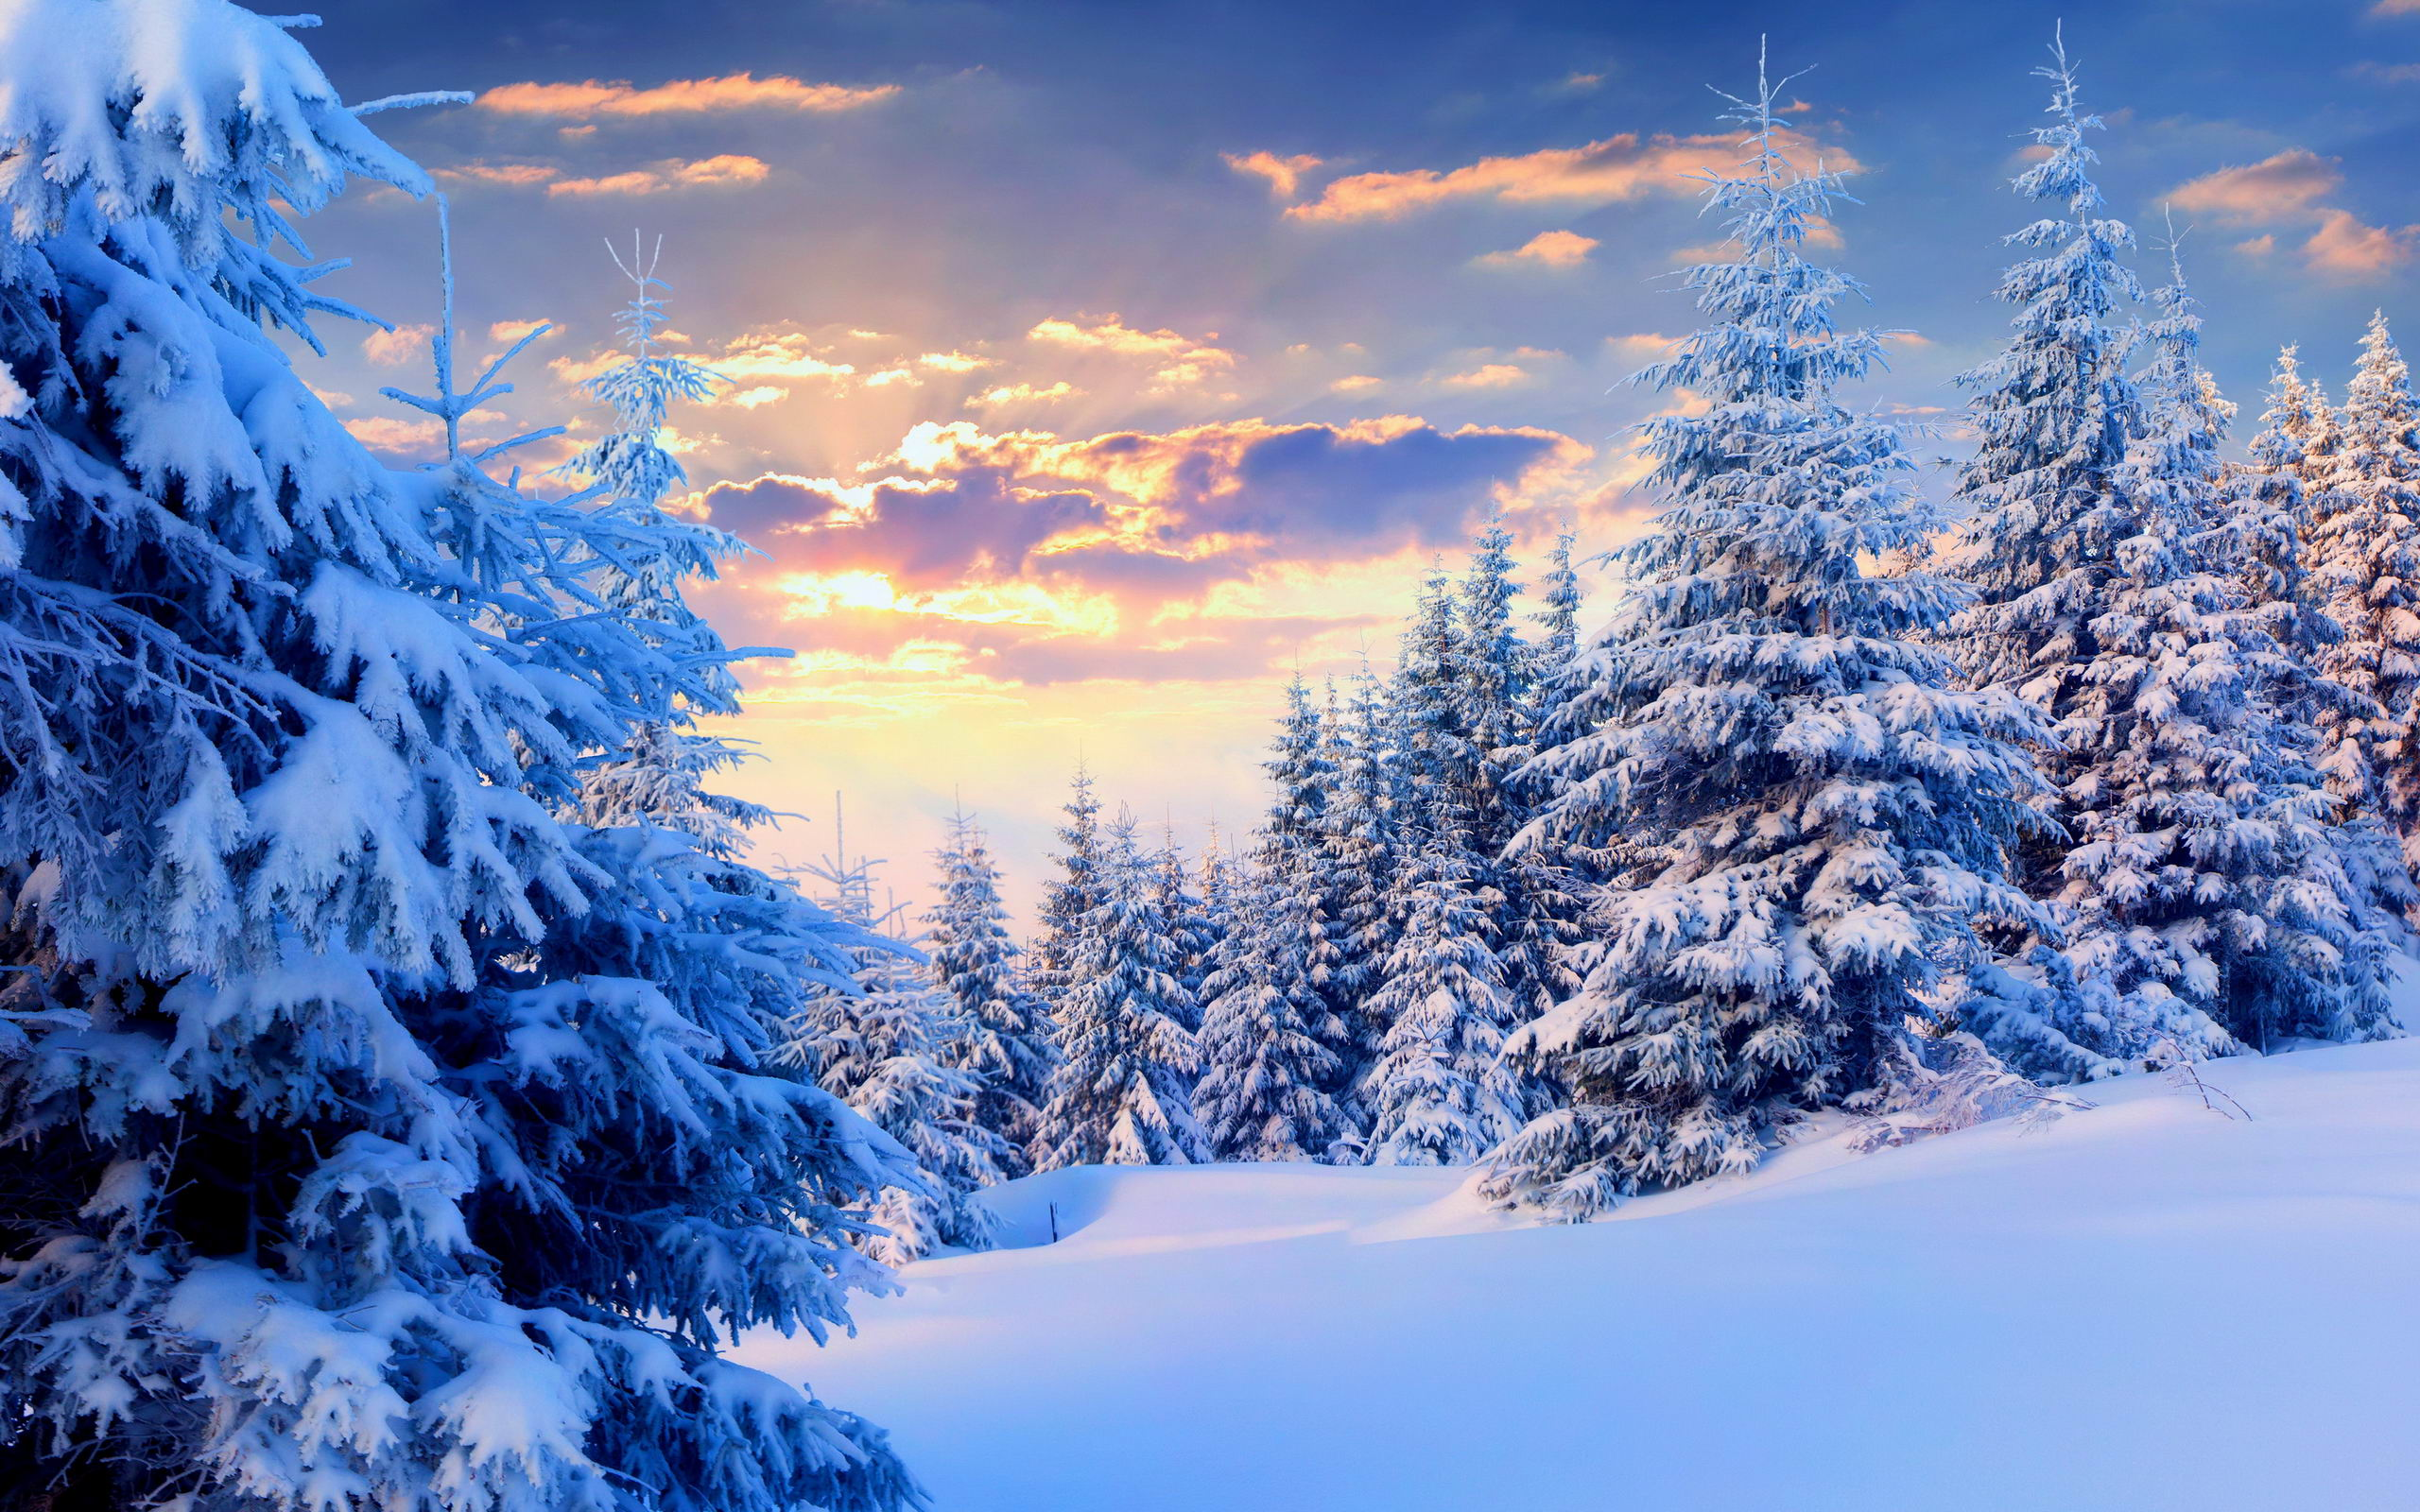 Firs under snow forest wallpapers firs under snow forest for Immagini per desktop inverno